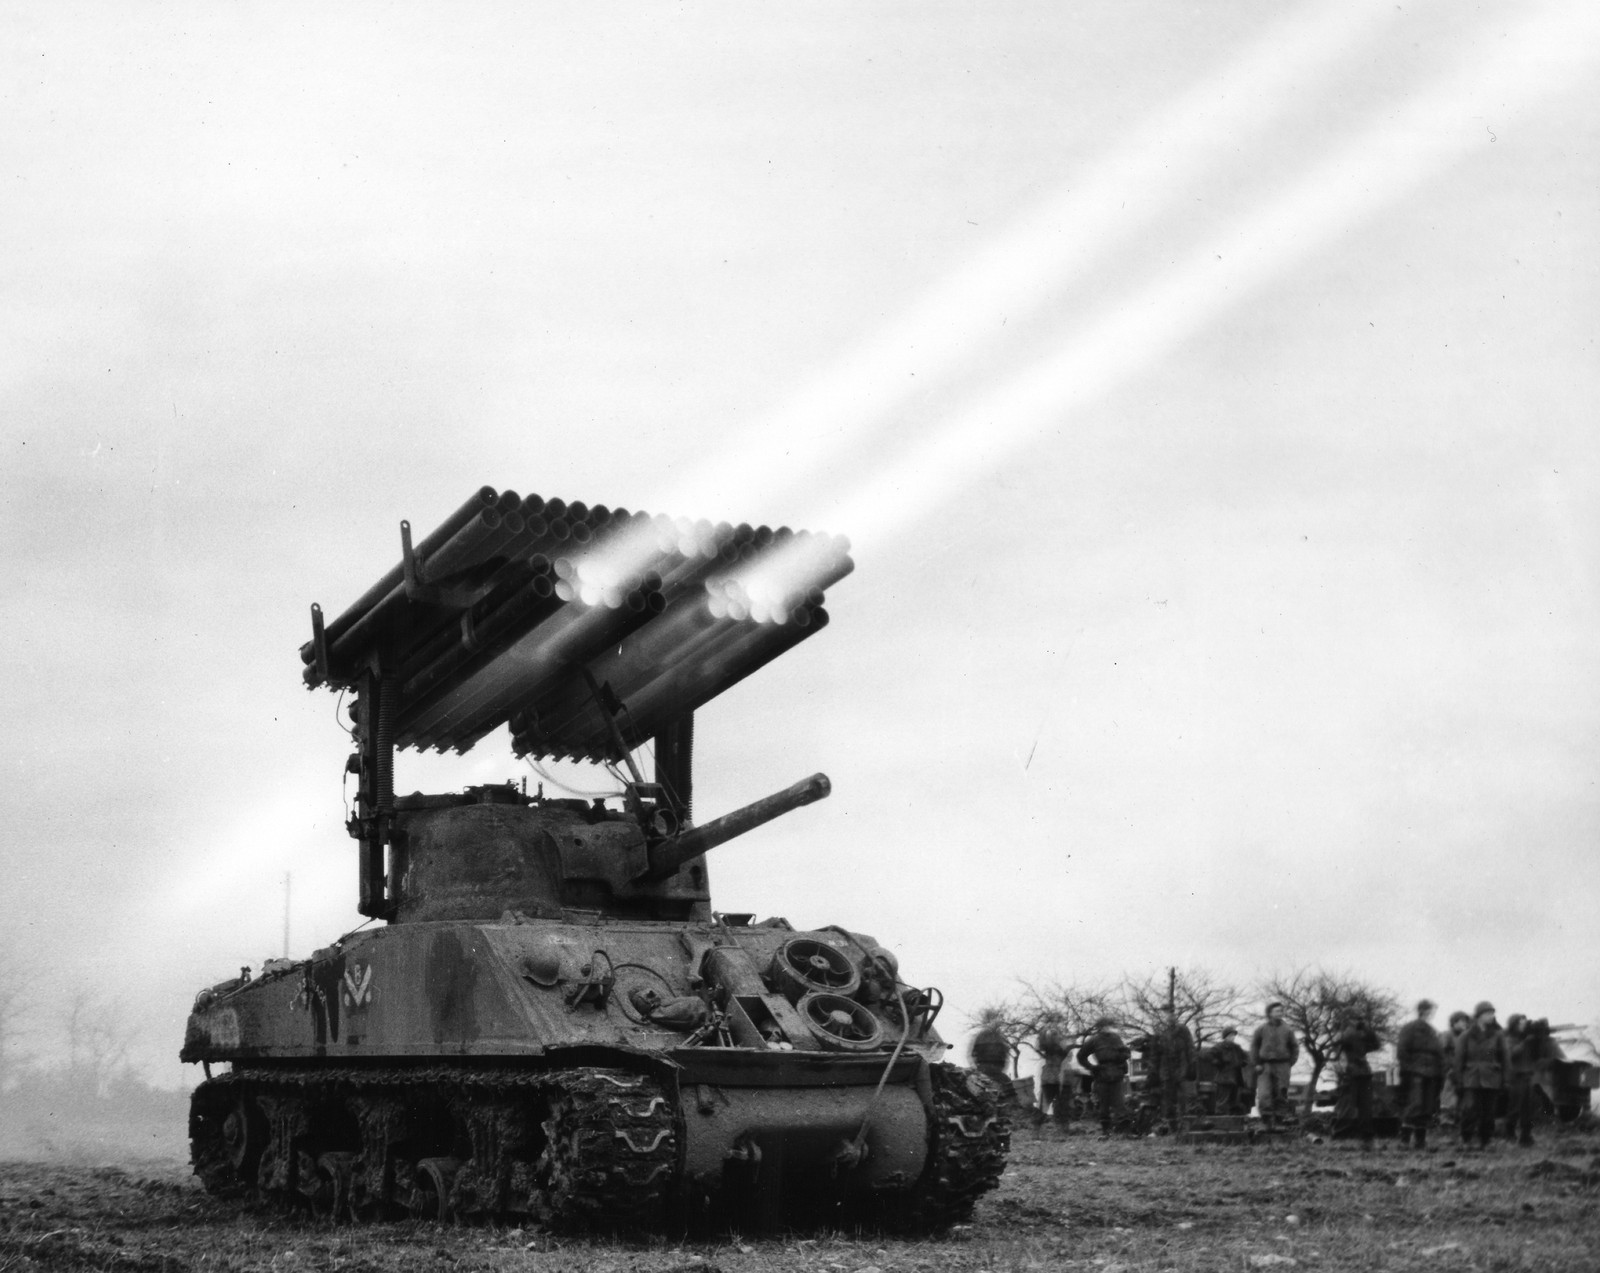 File:T-34-rocket-launcher-France.jpg